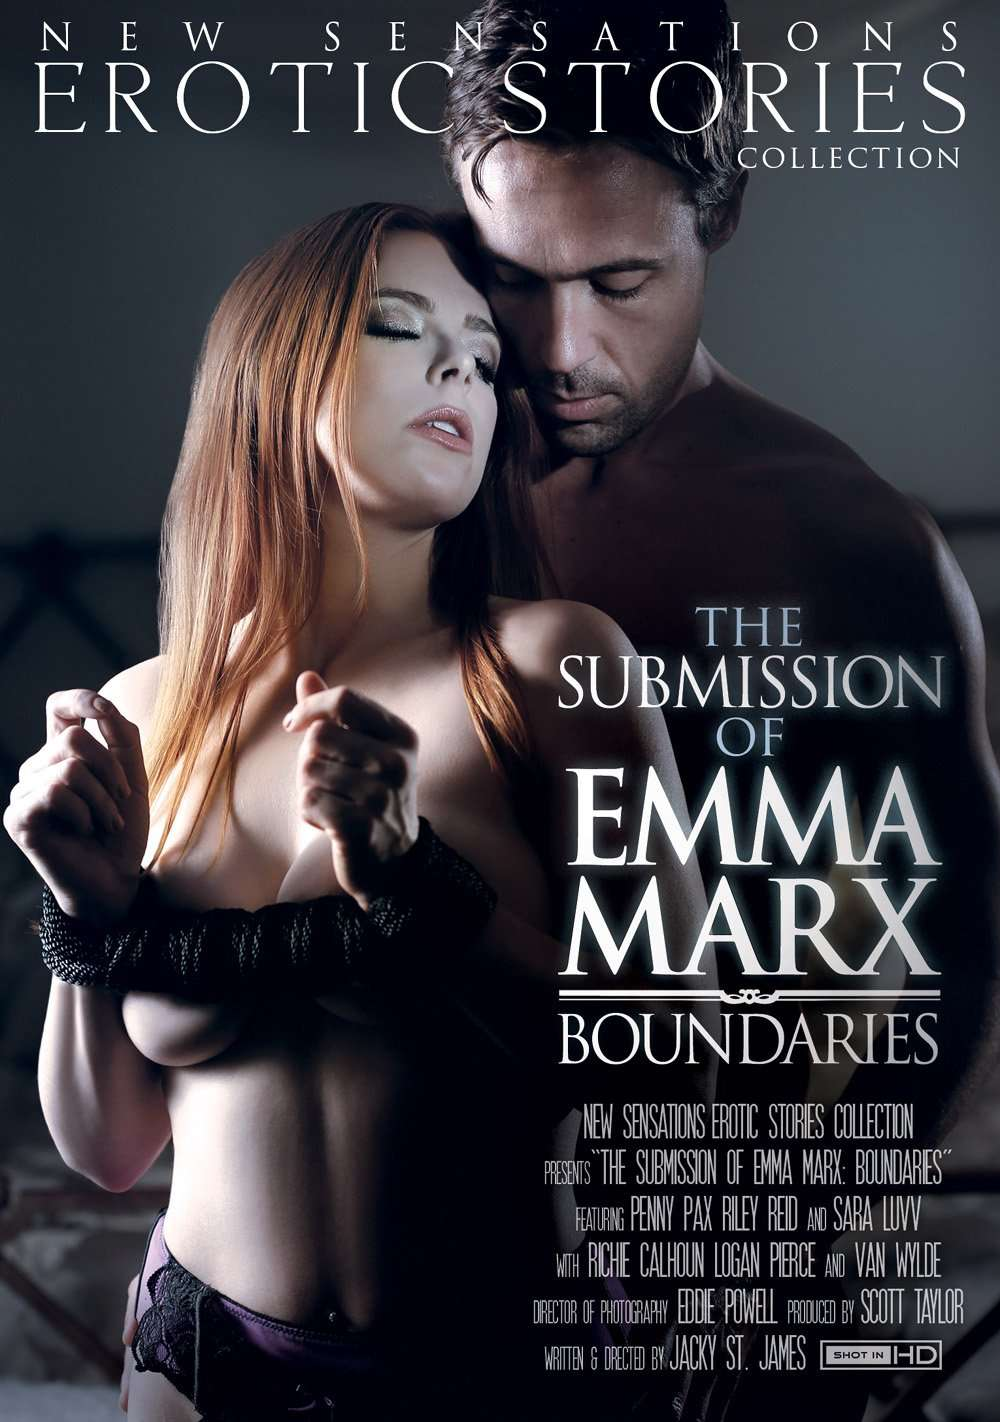 The Submission of Emma Marx: Boundaries kapak